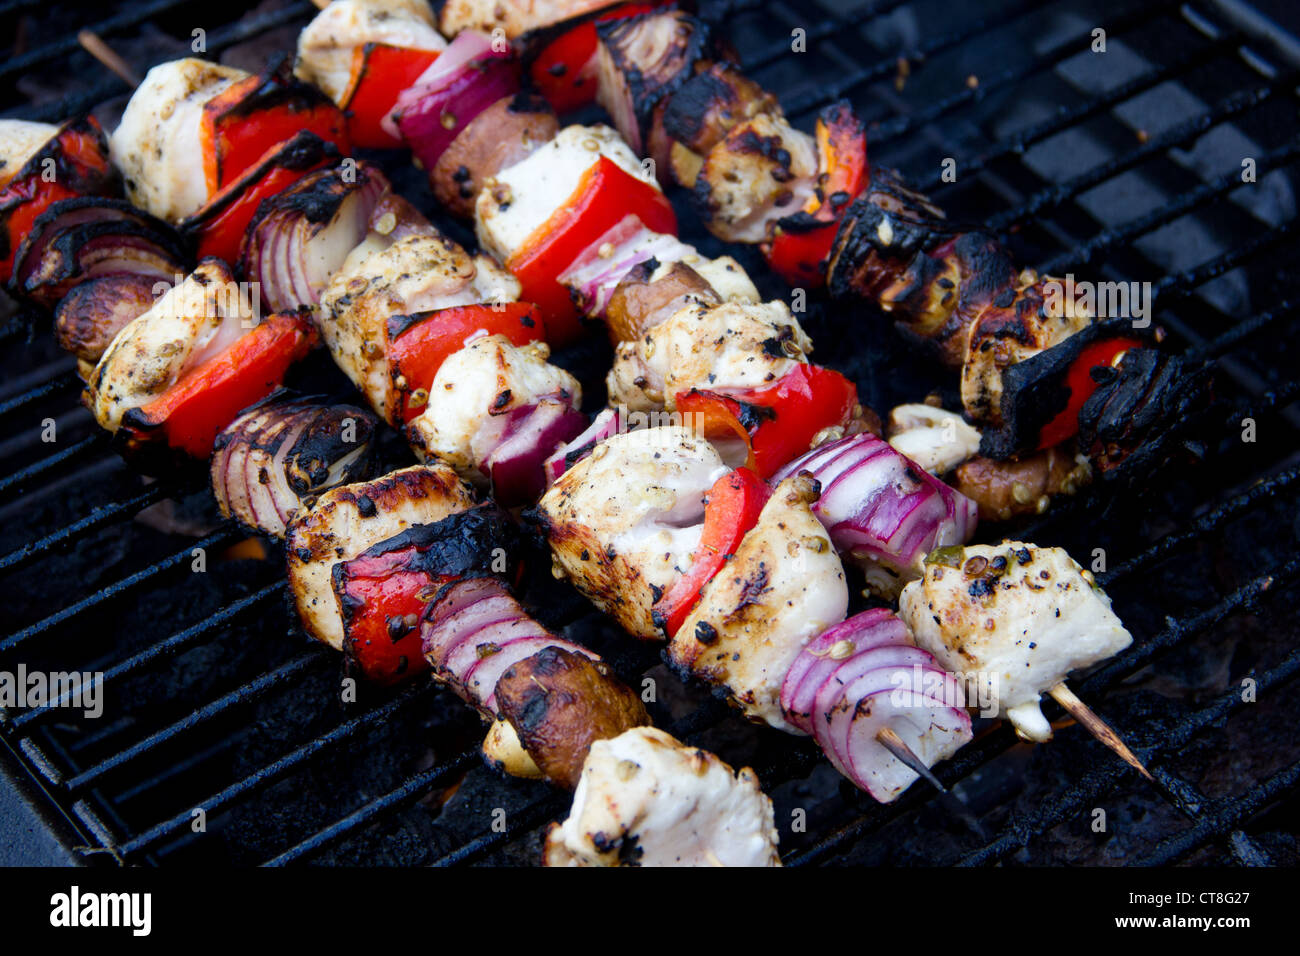 cooked chicken and vegetable kebabs on a barbecue - Stock Image